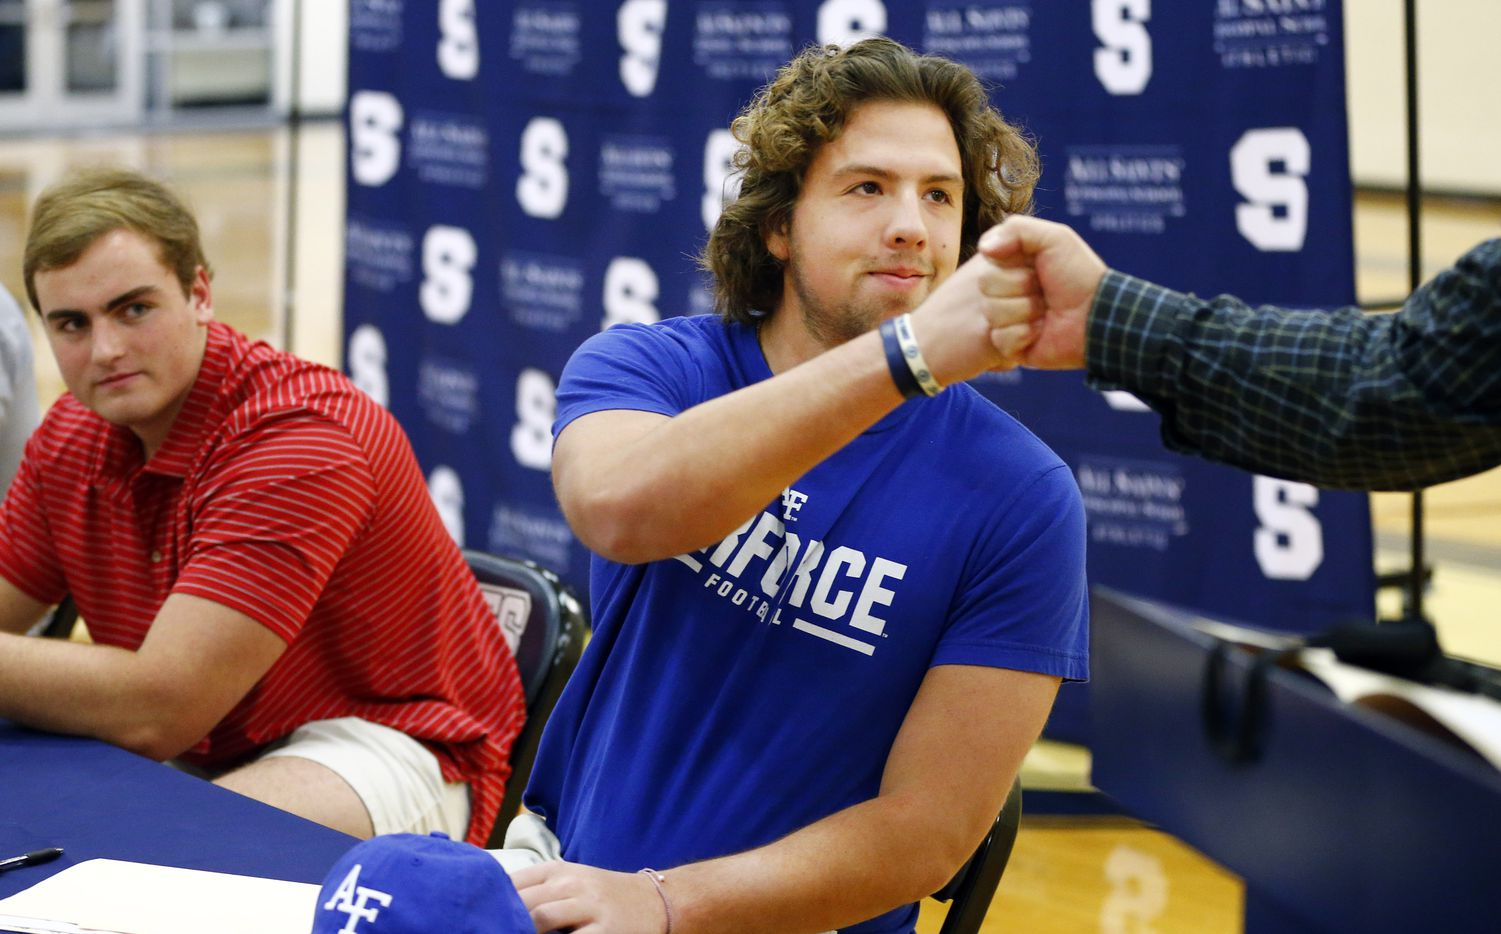 Fort Worth All Saints' Episcopal School football player Paul Breedlove receives a fist bump from head coach Aaron Beck after signing a letter of intent to play at Air Force during an event in the schools gymnasium, Wednesday, December 16, 2020. (Tom Fox/The Dallas Morning News)